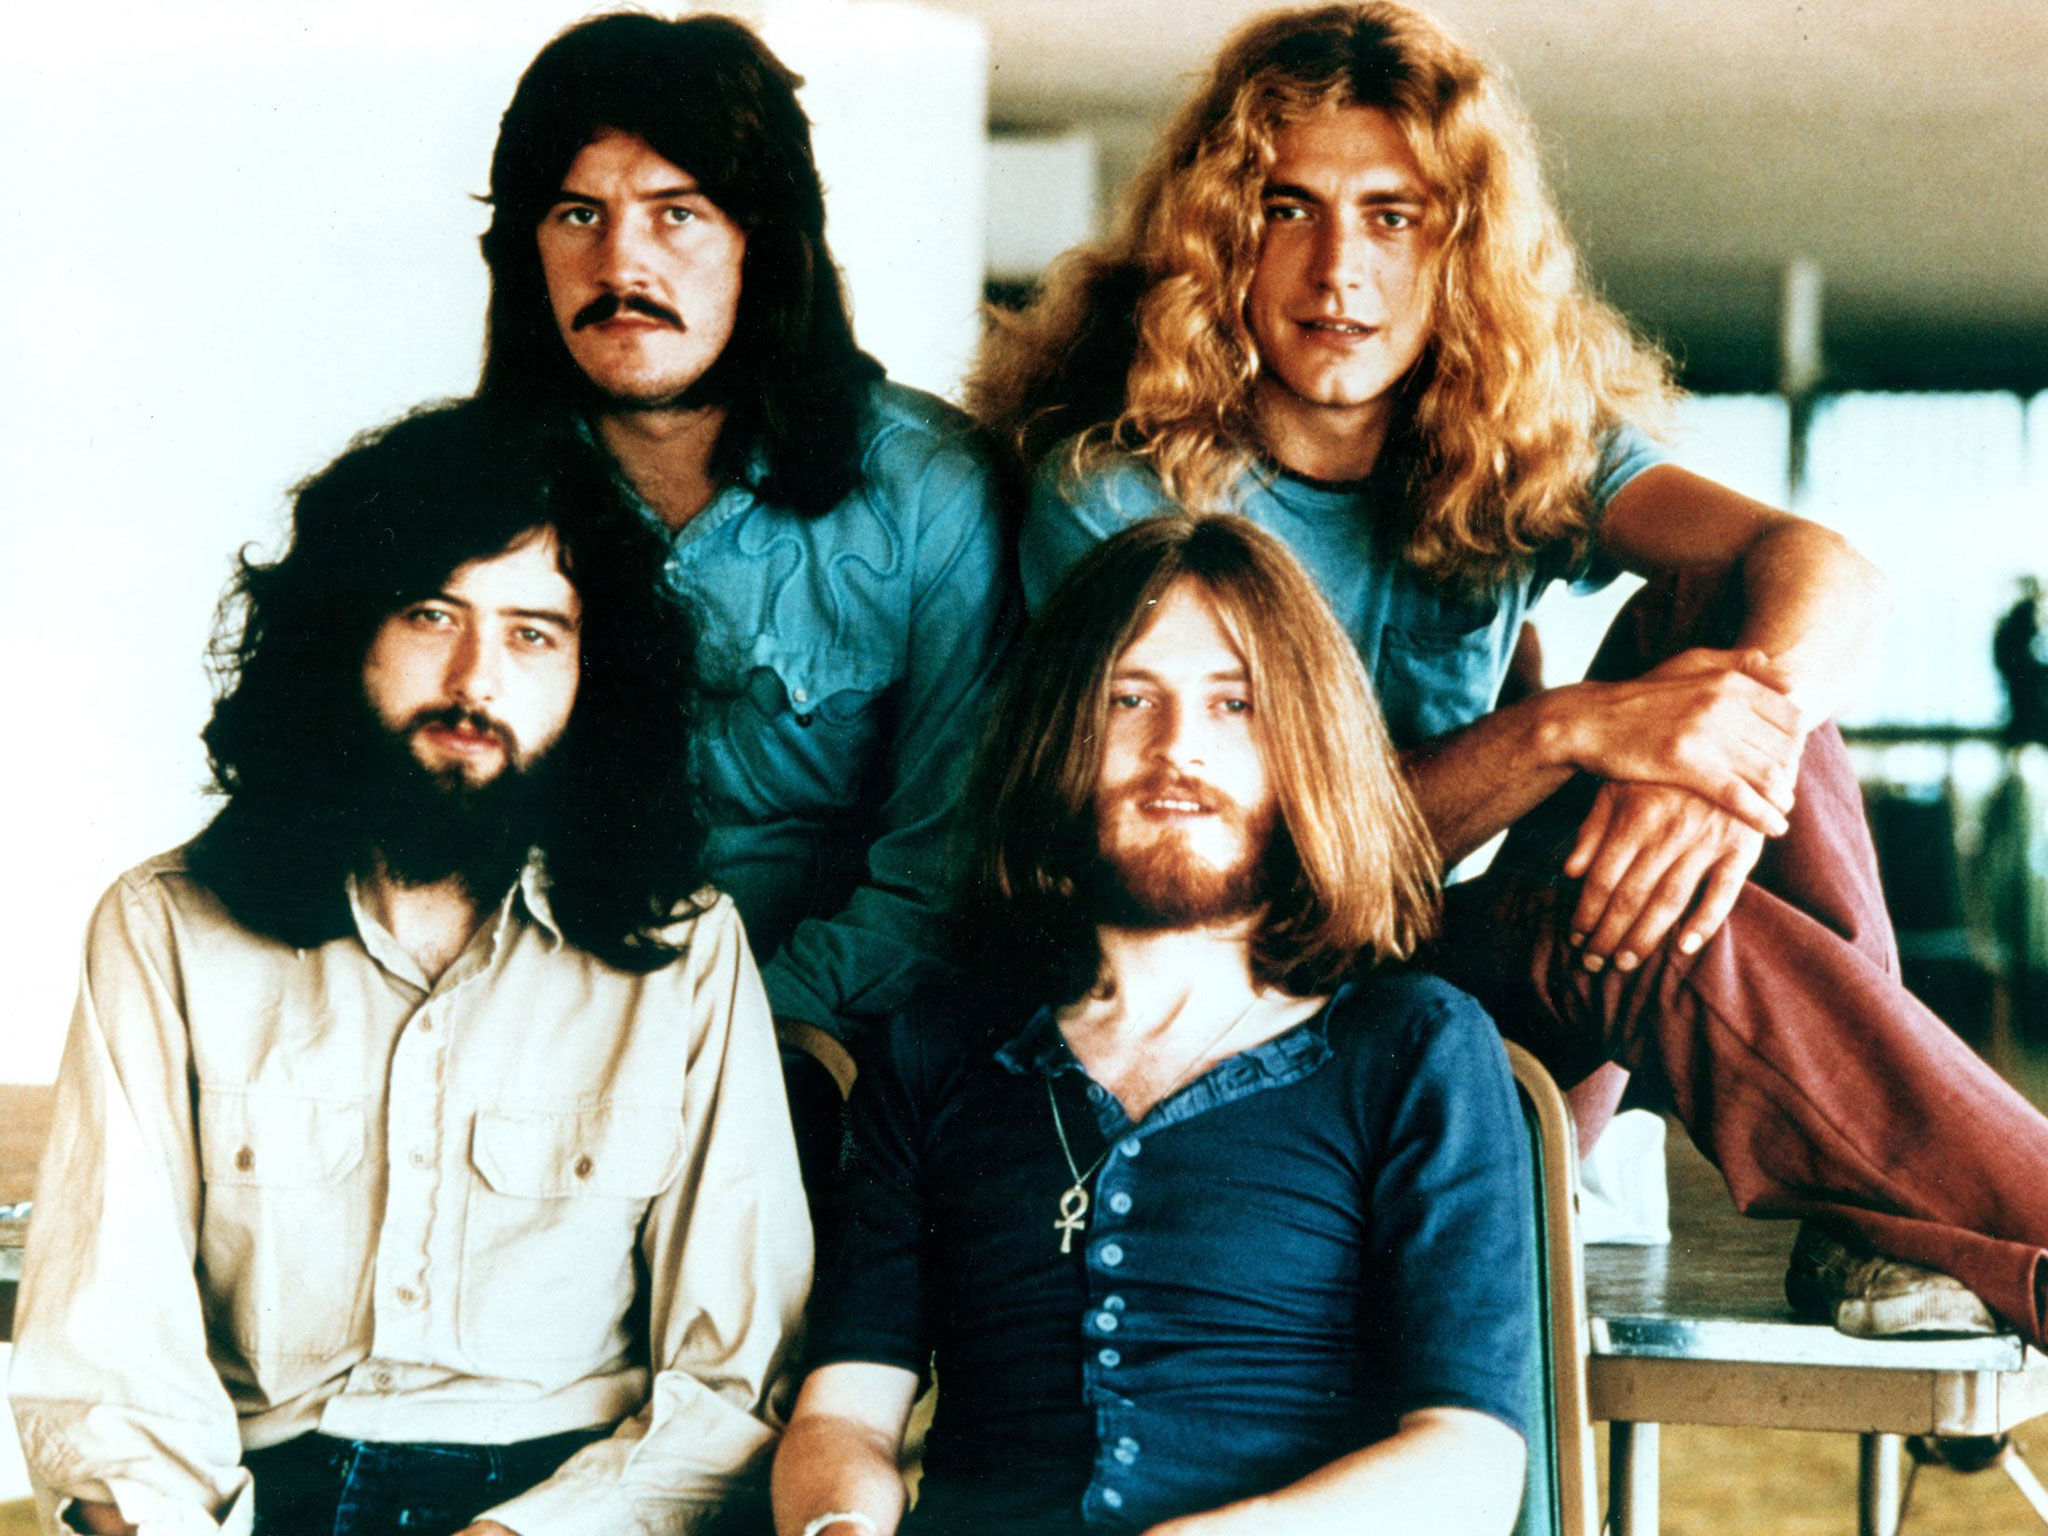 ¿Qué integrante de Led Zeppelin falleció prematuramente?